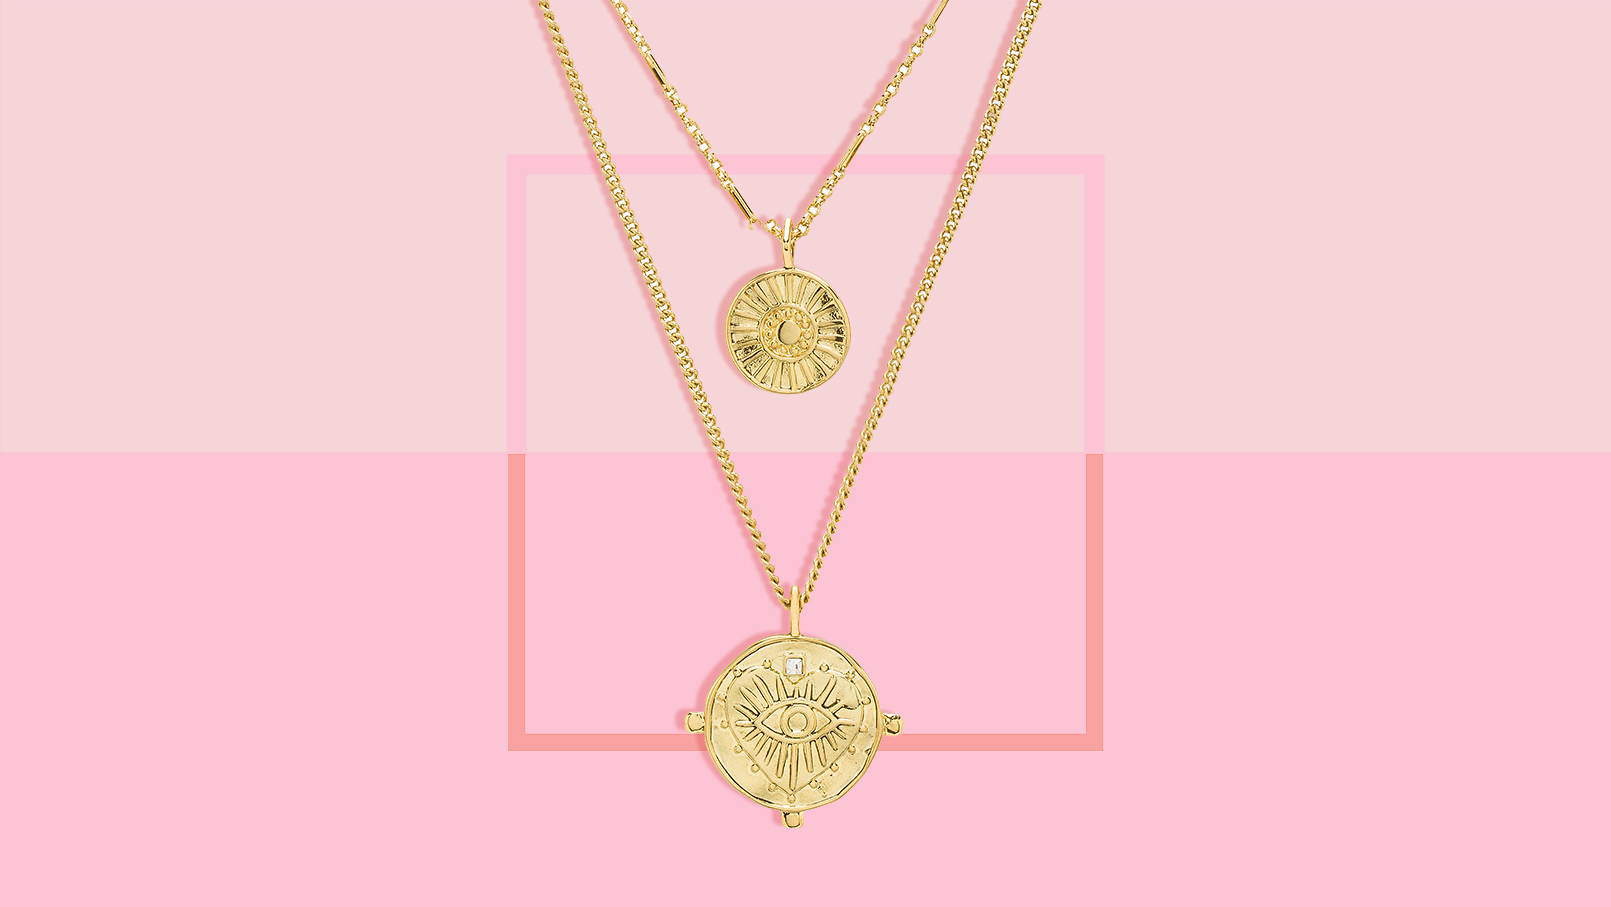 gold-necklace-coin-charm